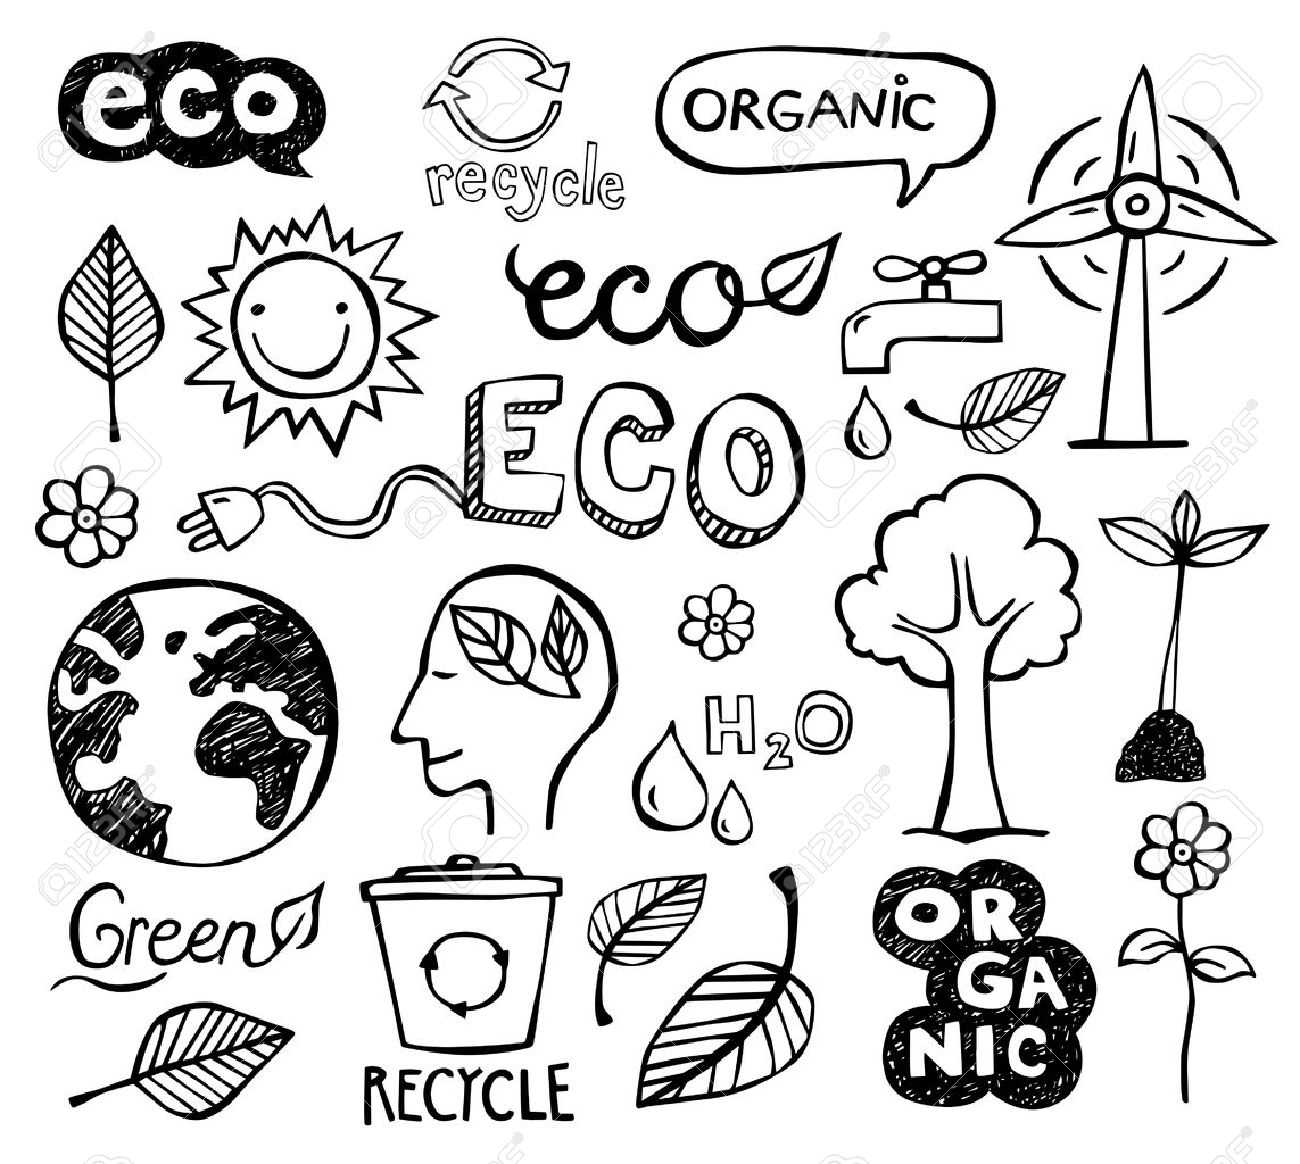 Eco and organic doodles - icons. Ecology, sustainable development, nature protection. - 53521090